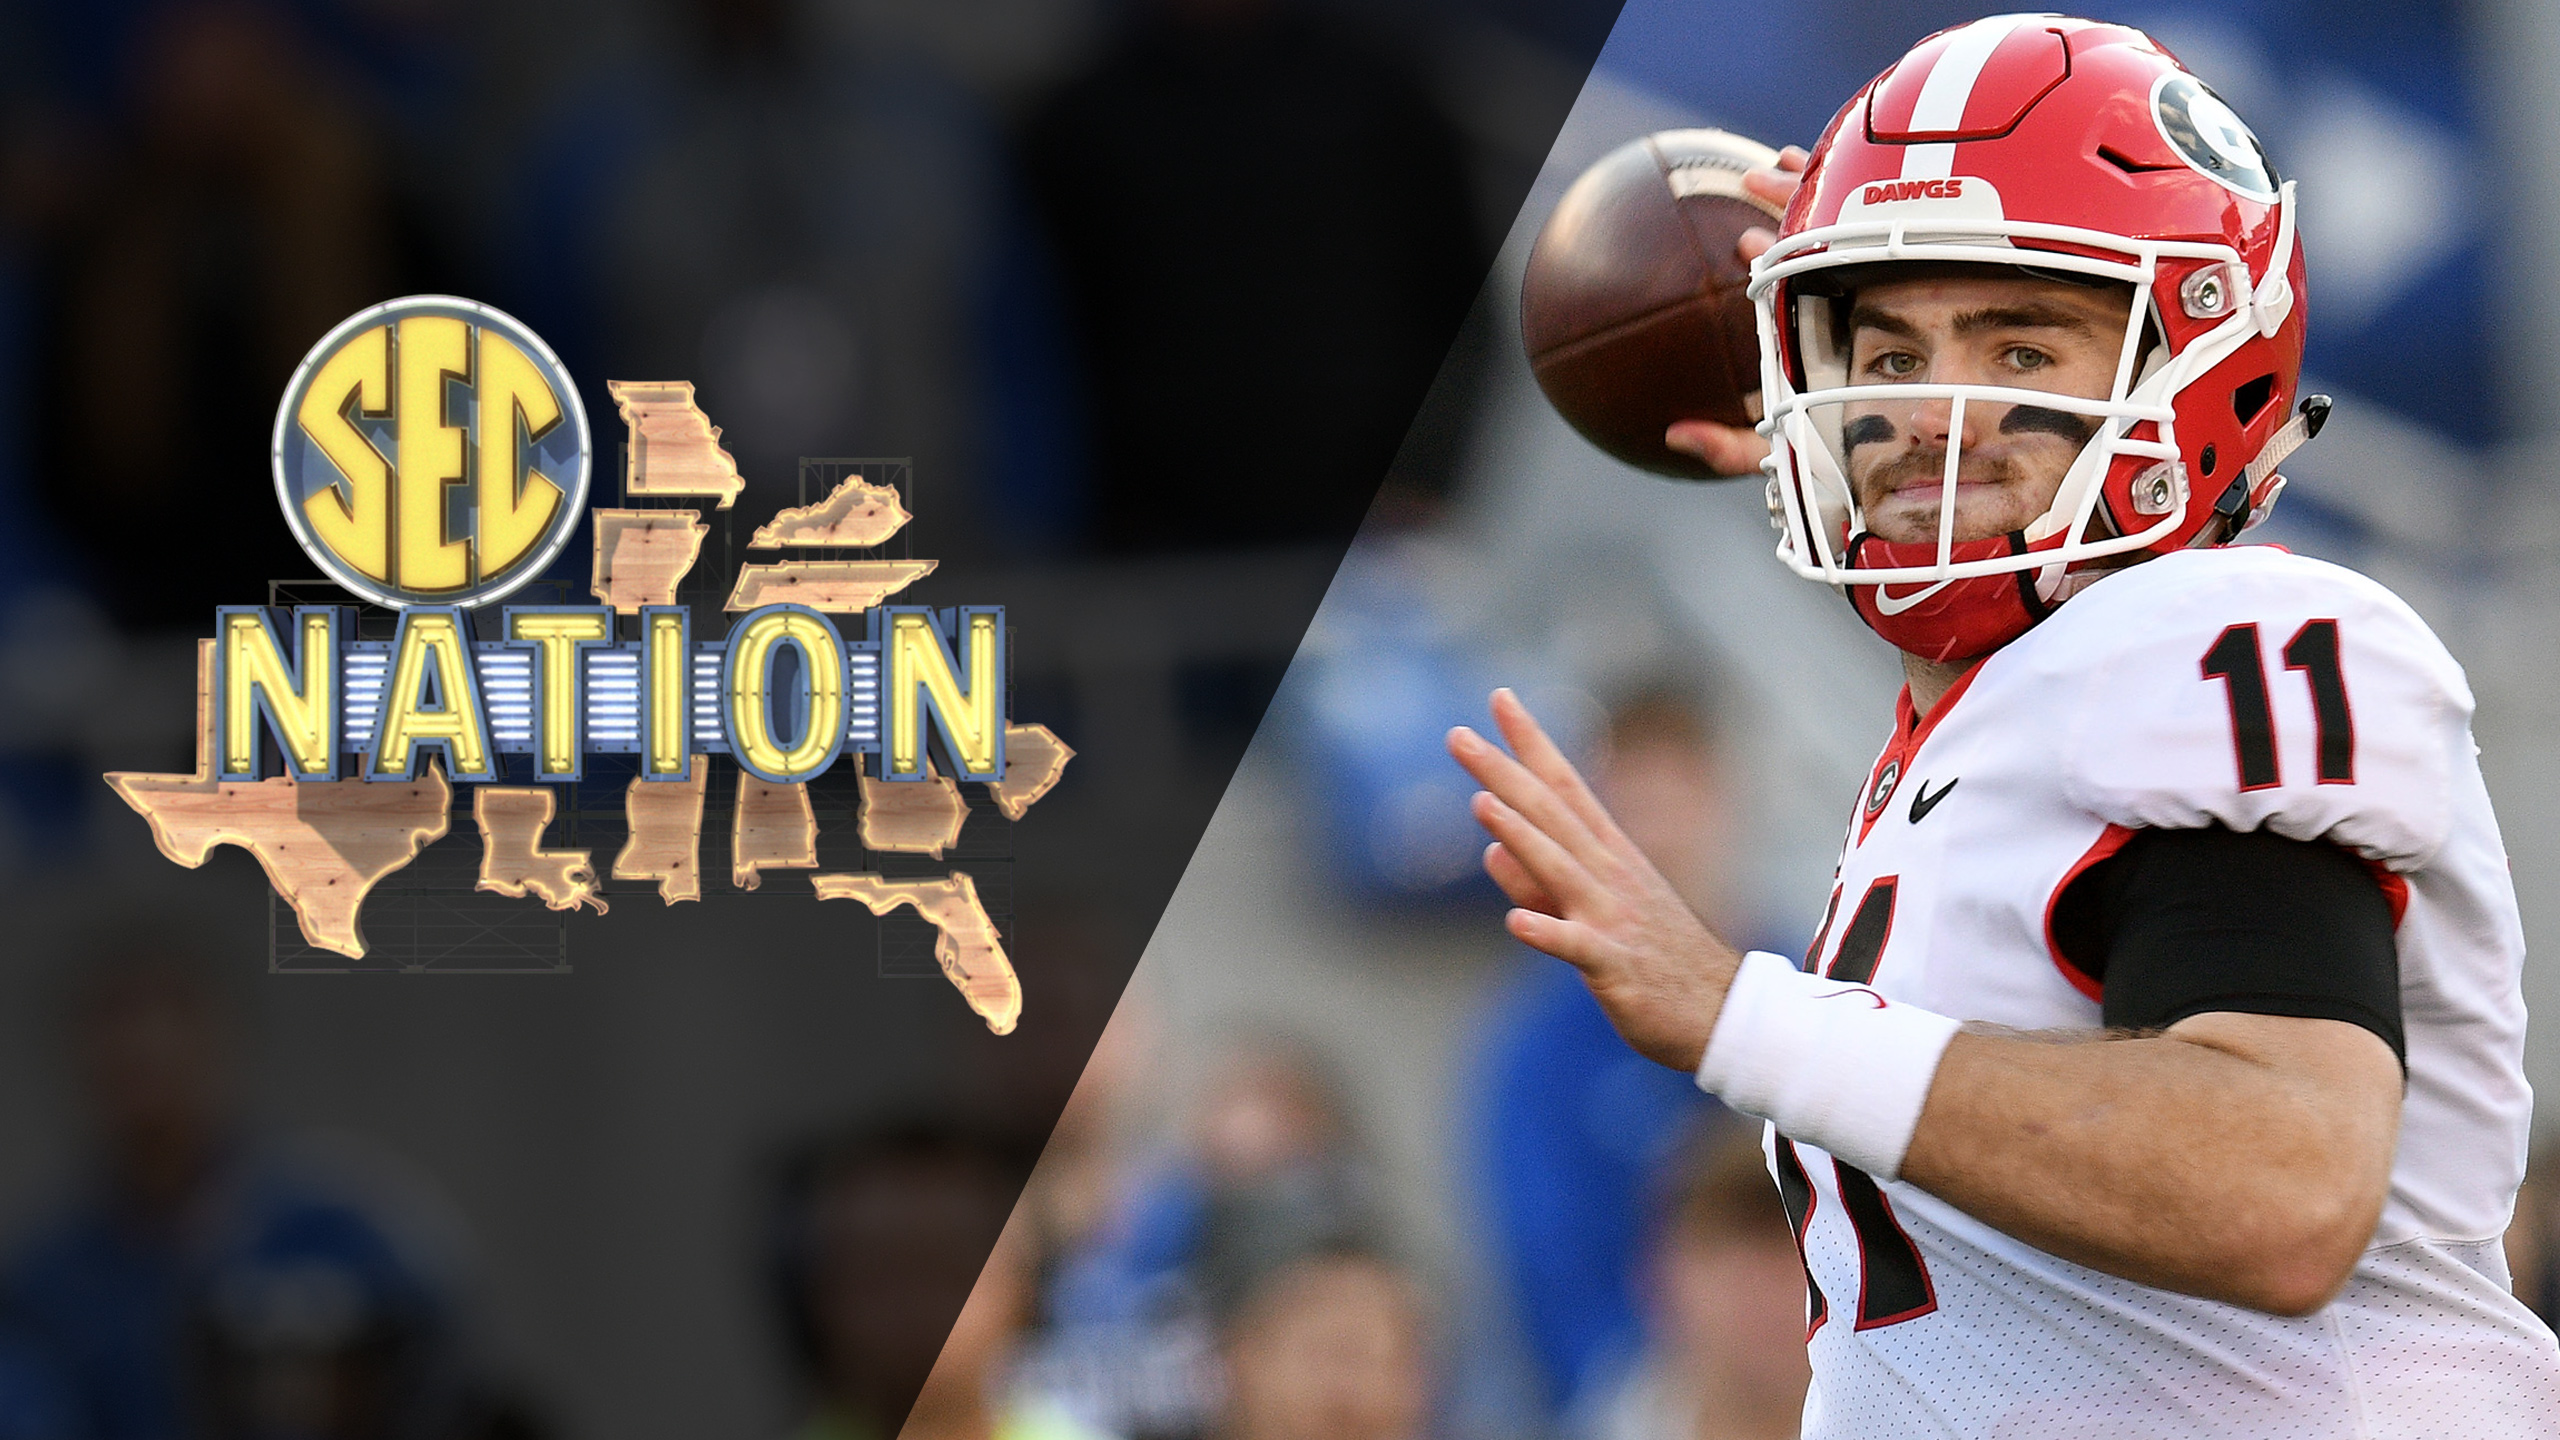 Sat, 11/17 - SEC Nation Presented by Regions Bank